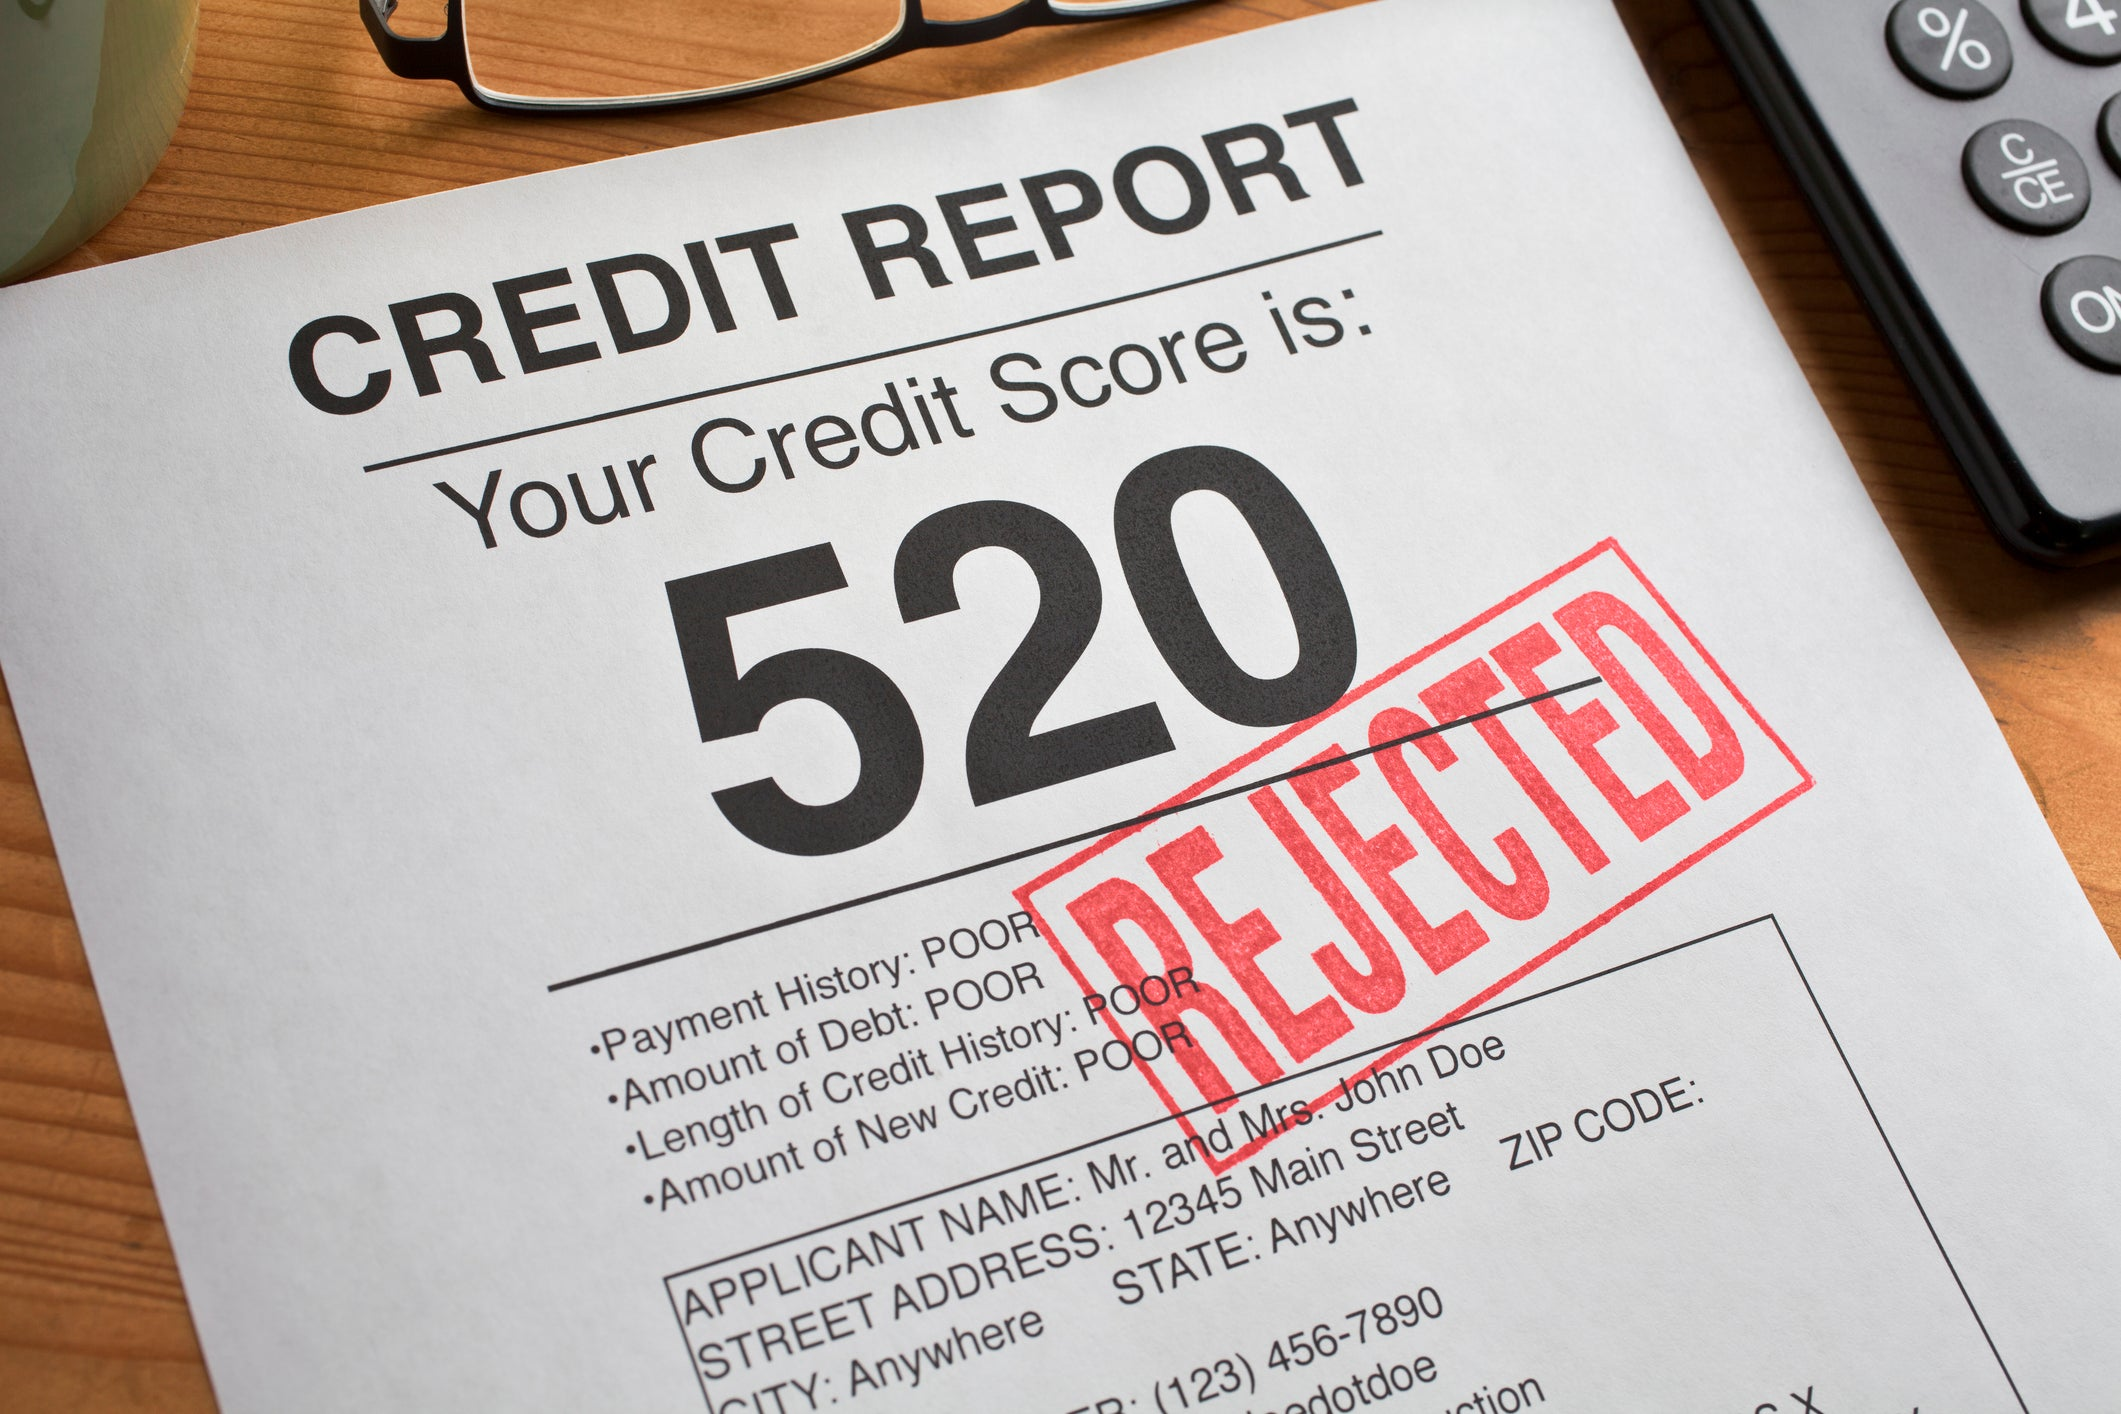 Credit Cards For Credit Score Under 600 >> What Does It Mean If Your Credit Score Is Less Than 600